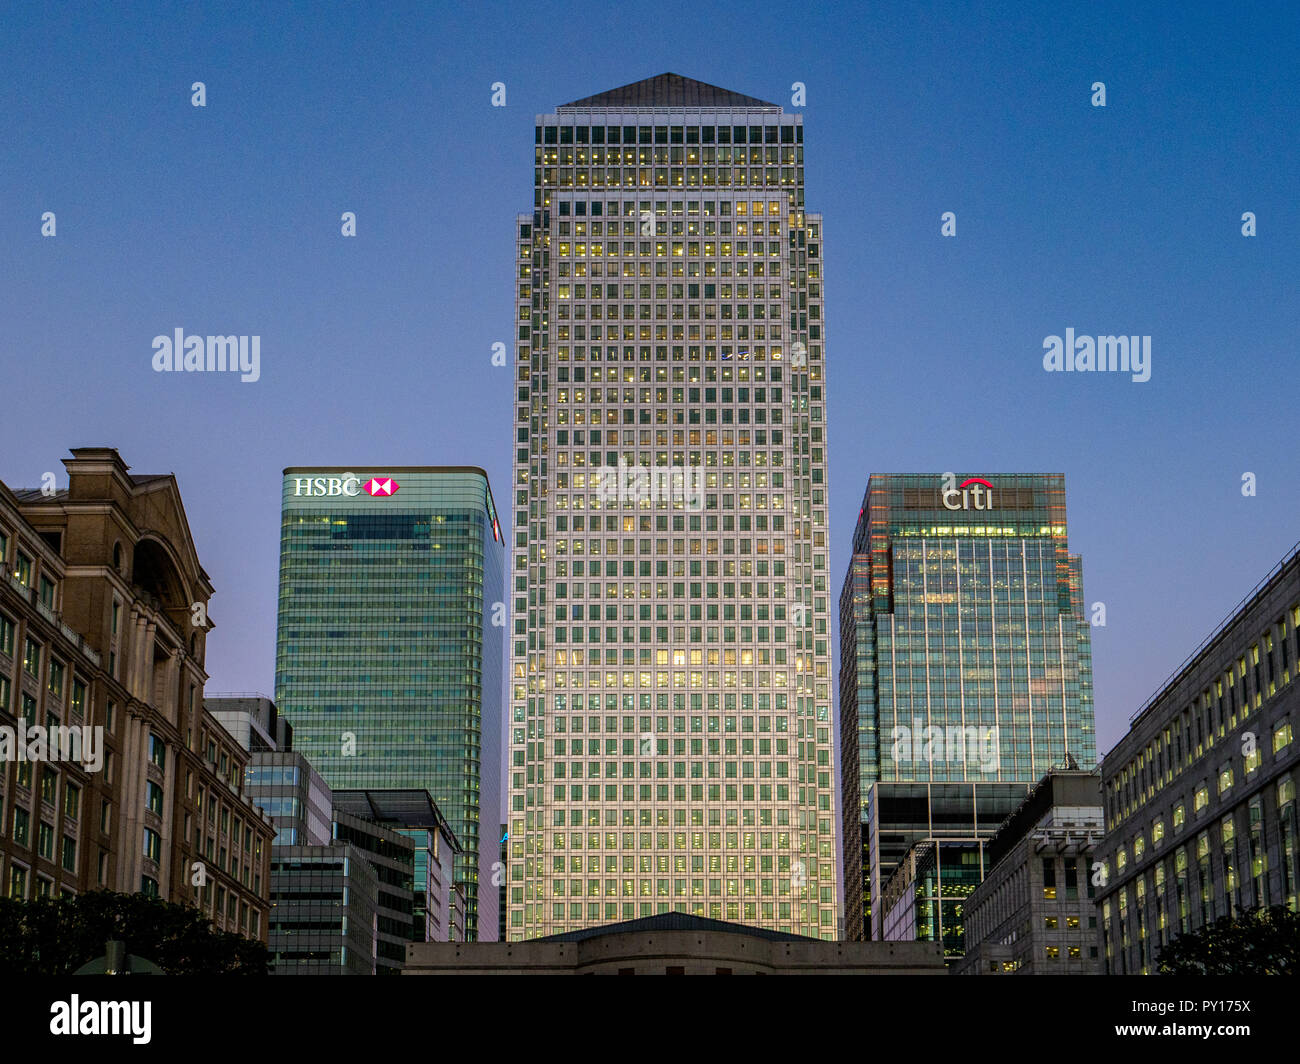 Canary Wharf London - Canary Wharf development in London's Docklands - Stock Image